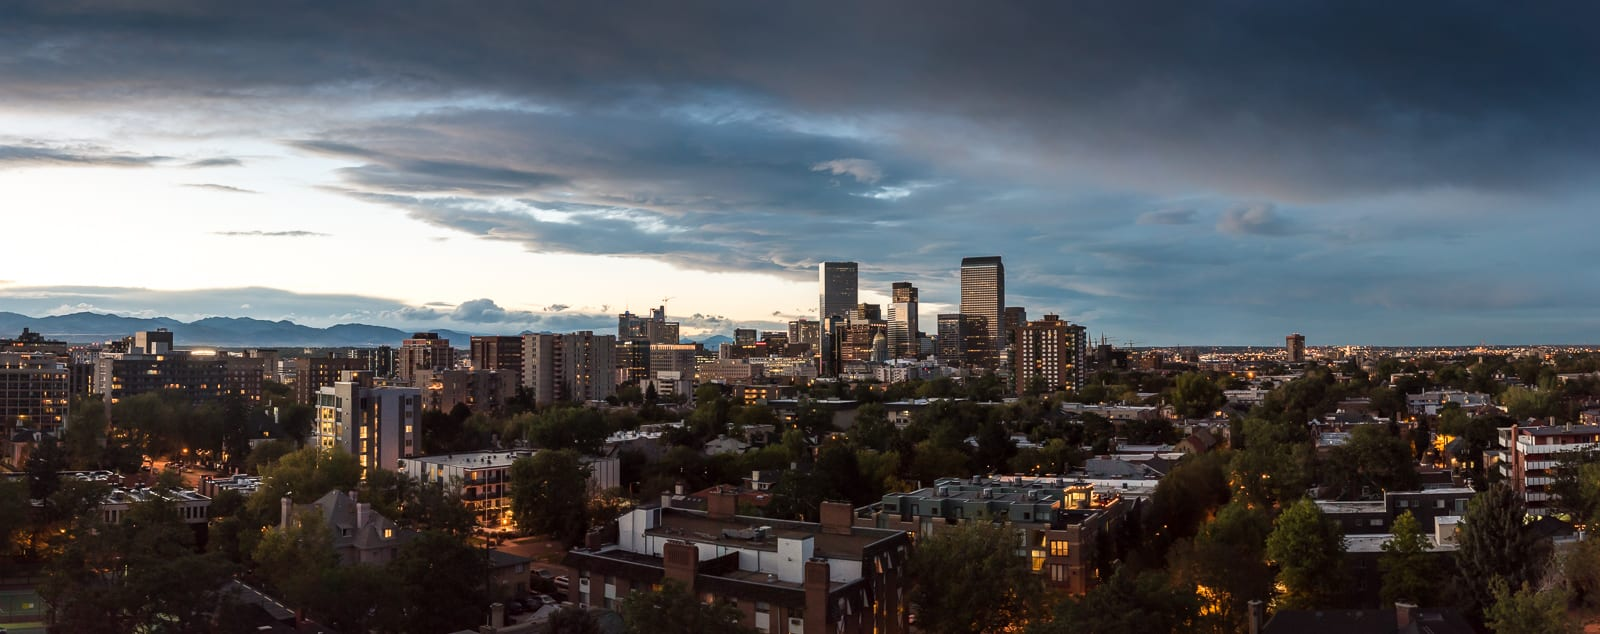 rooftop wedding | Wedding Photography | Denver | From the Hip Photo